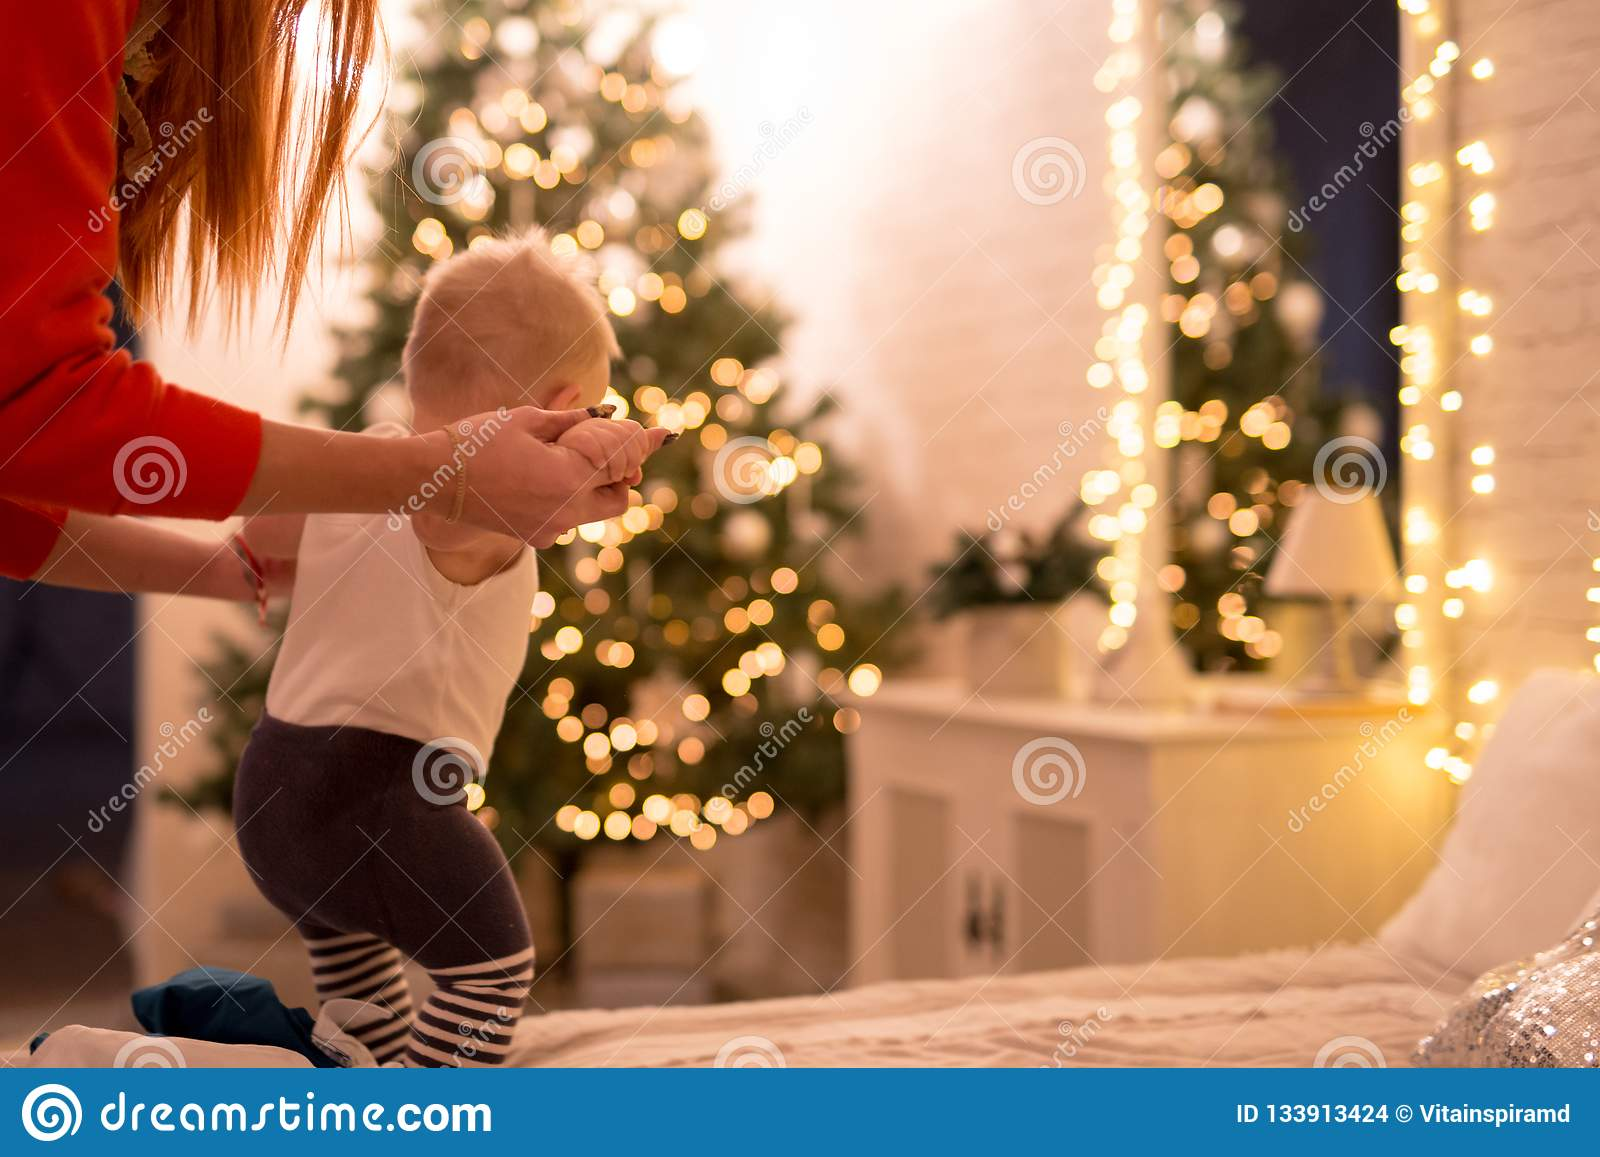 Little baby boy 1 year old learning how to walk in a decorated New Year house. Mom hold by the hands of her son.